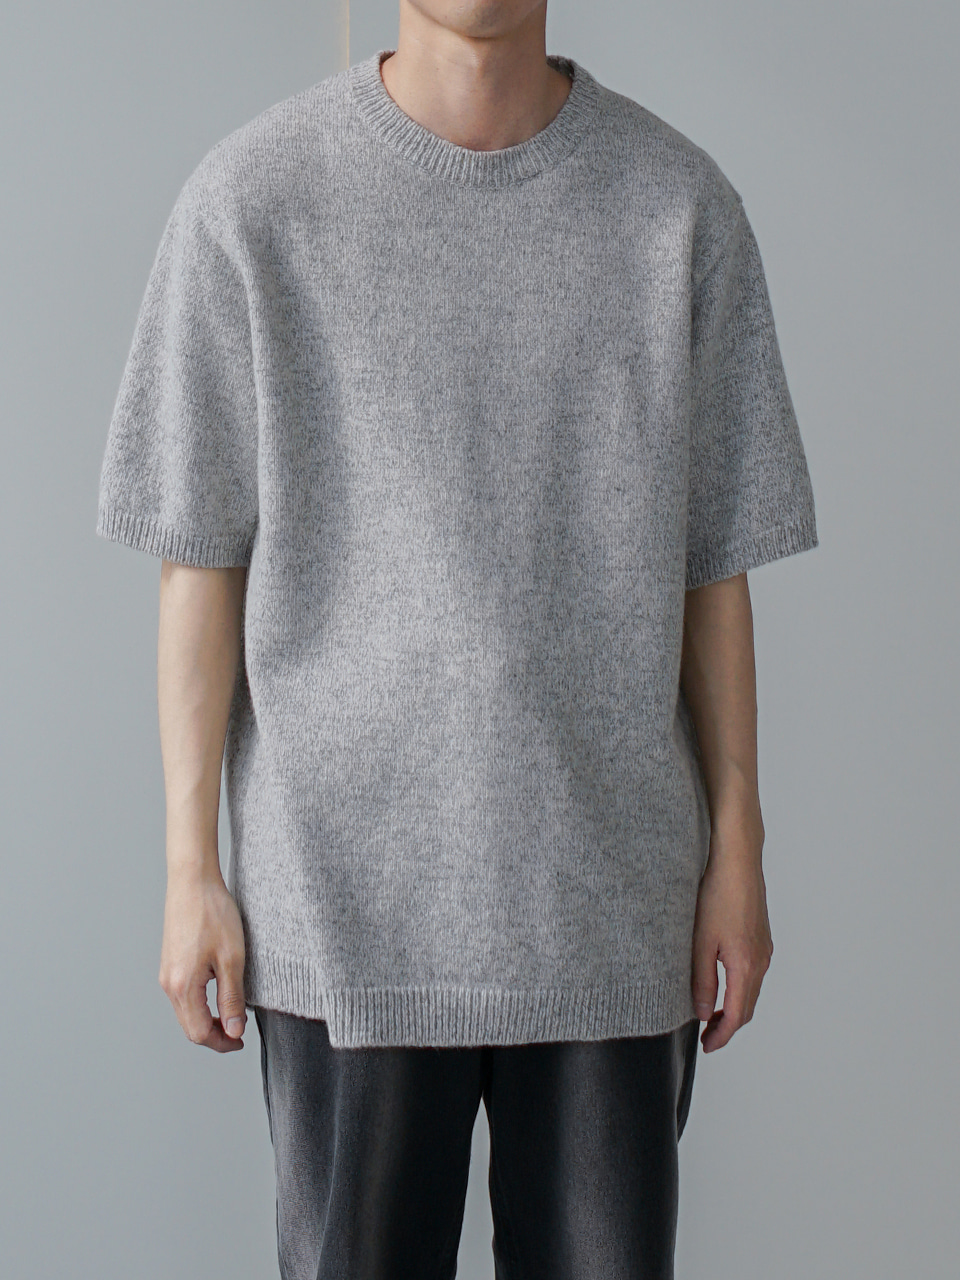 Owen Patterned Half Knit (3color)